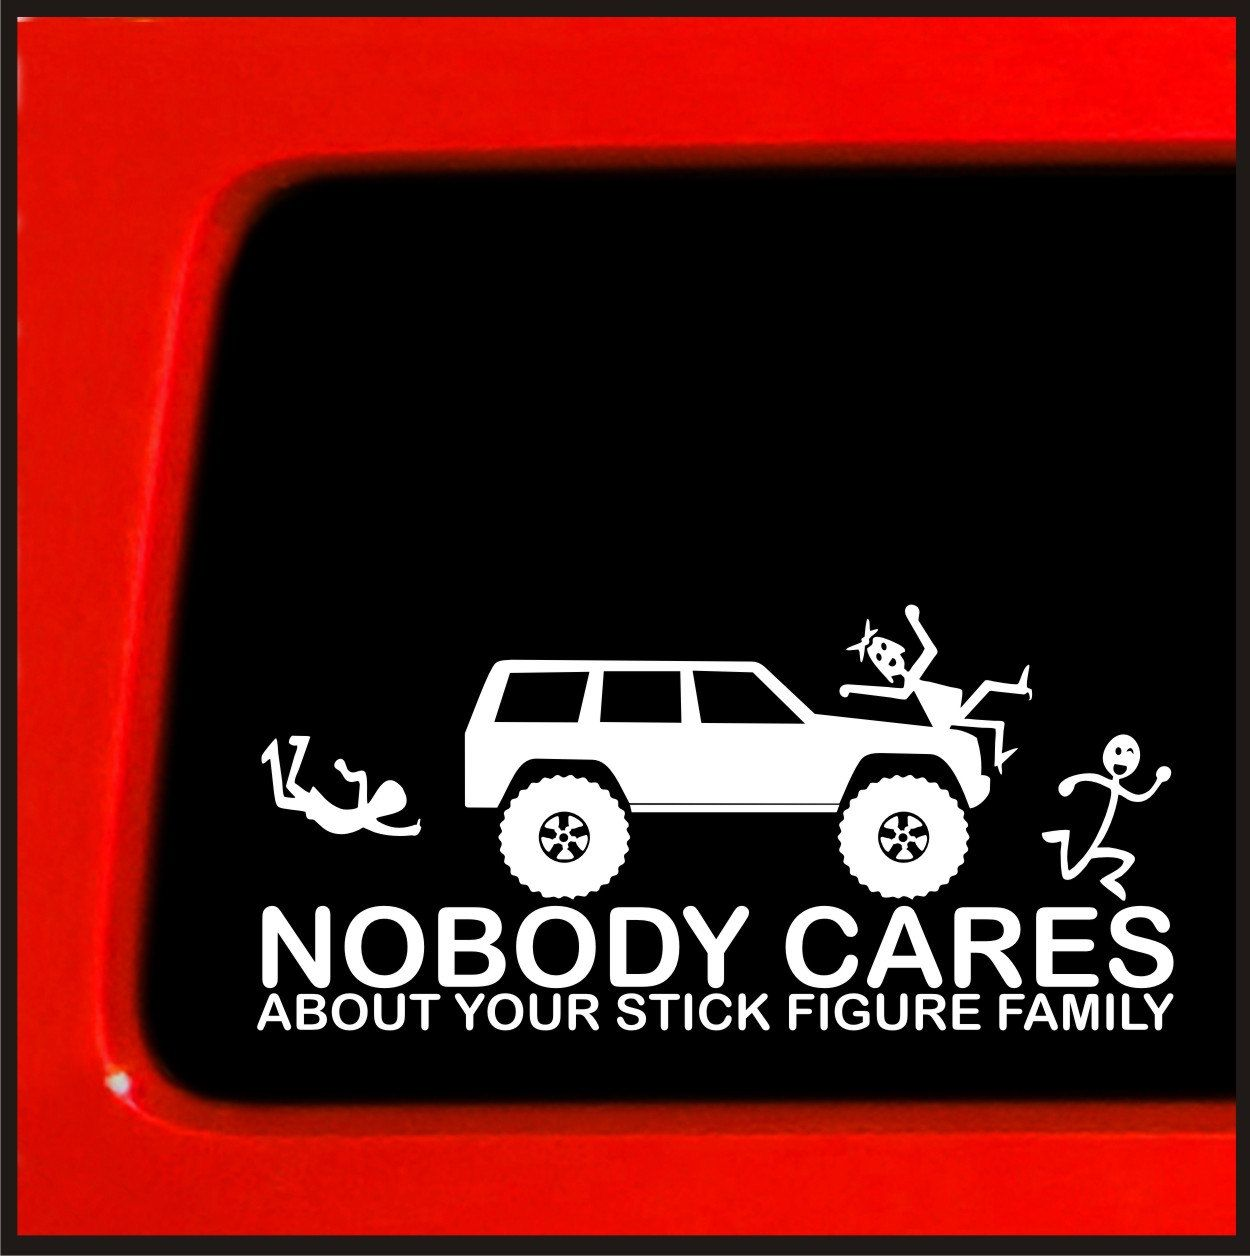 Stick Figure Sticker For Jeep Cherokee Family Nobody Cares Funny - Funny decal stickers for carssticker car window picture more detailed picture about funny car